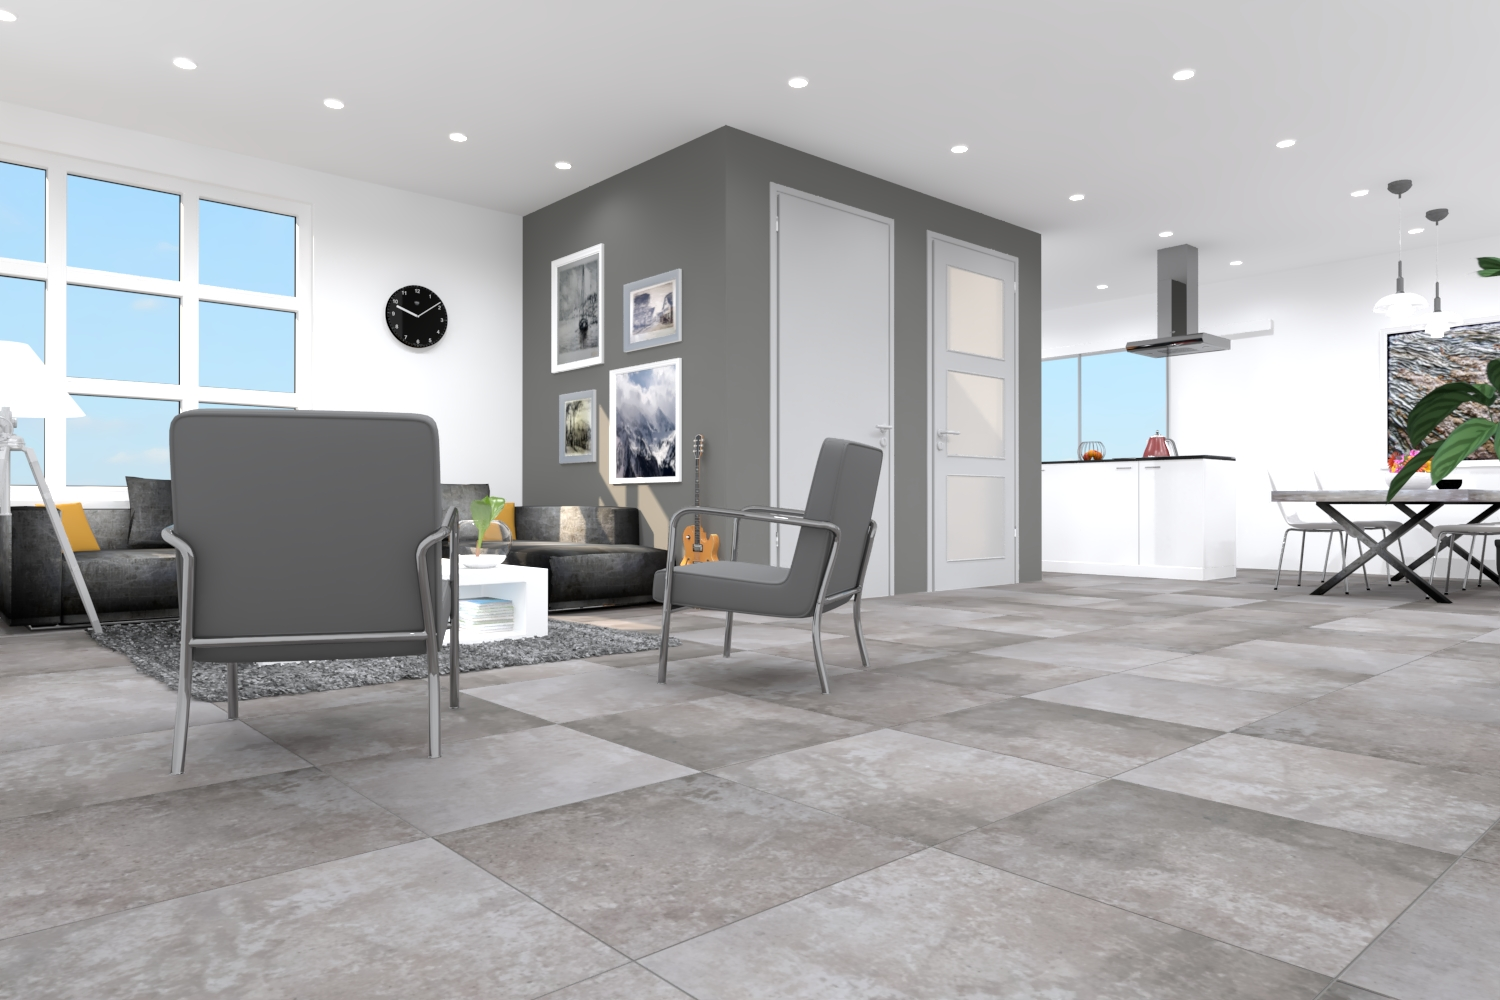 Central District 60x60 - VILLEROY & BOCH